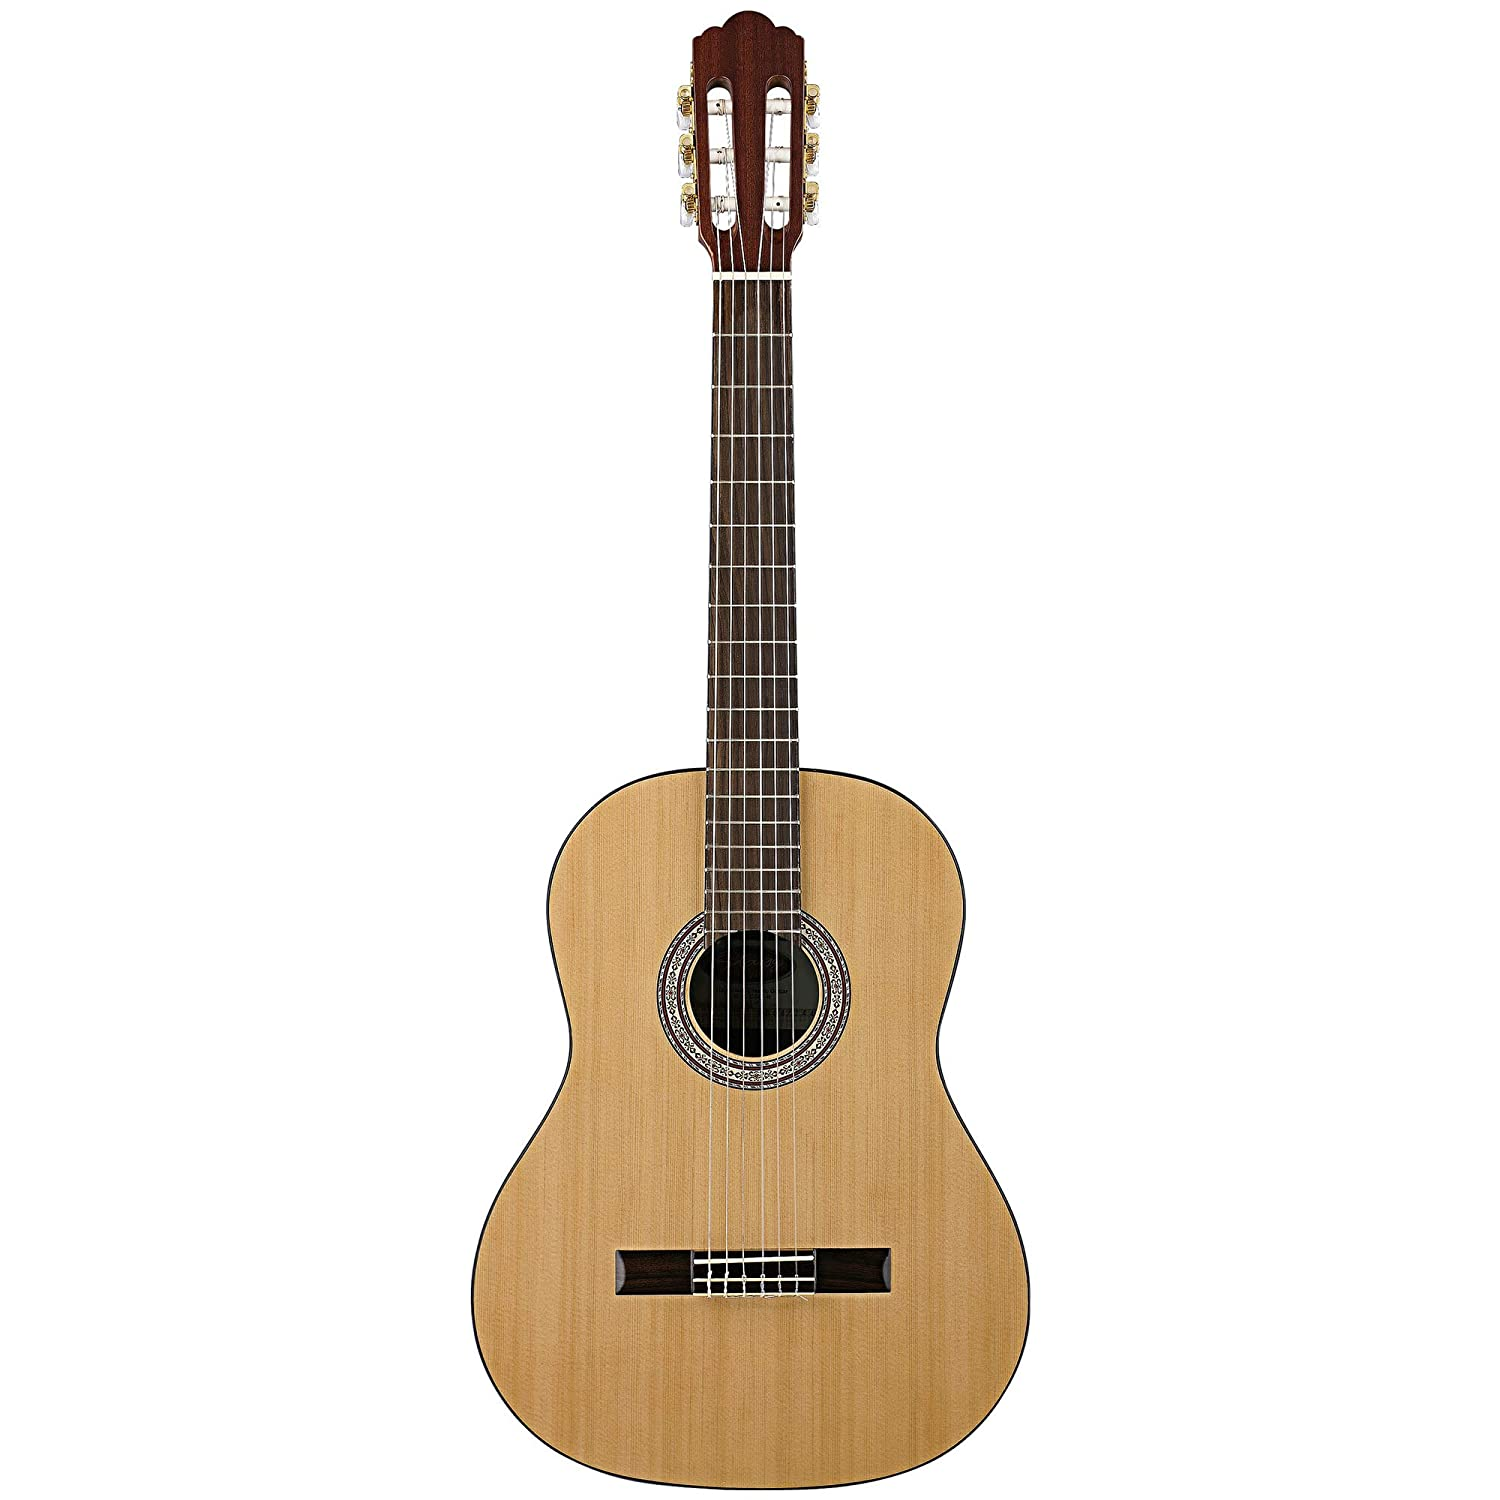 Stagg C547-N Light Natural Spruce and Mahogany Classical Guitar